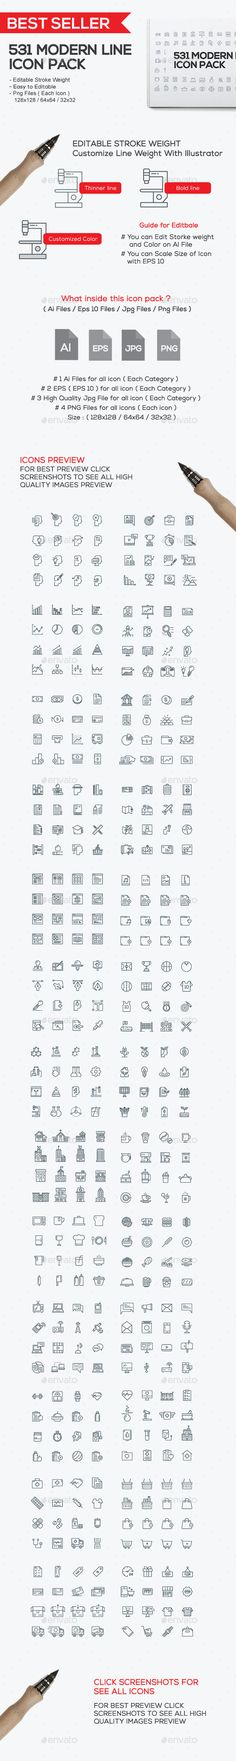 540 Modern Line Icons - Icons